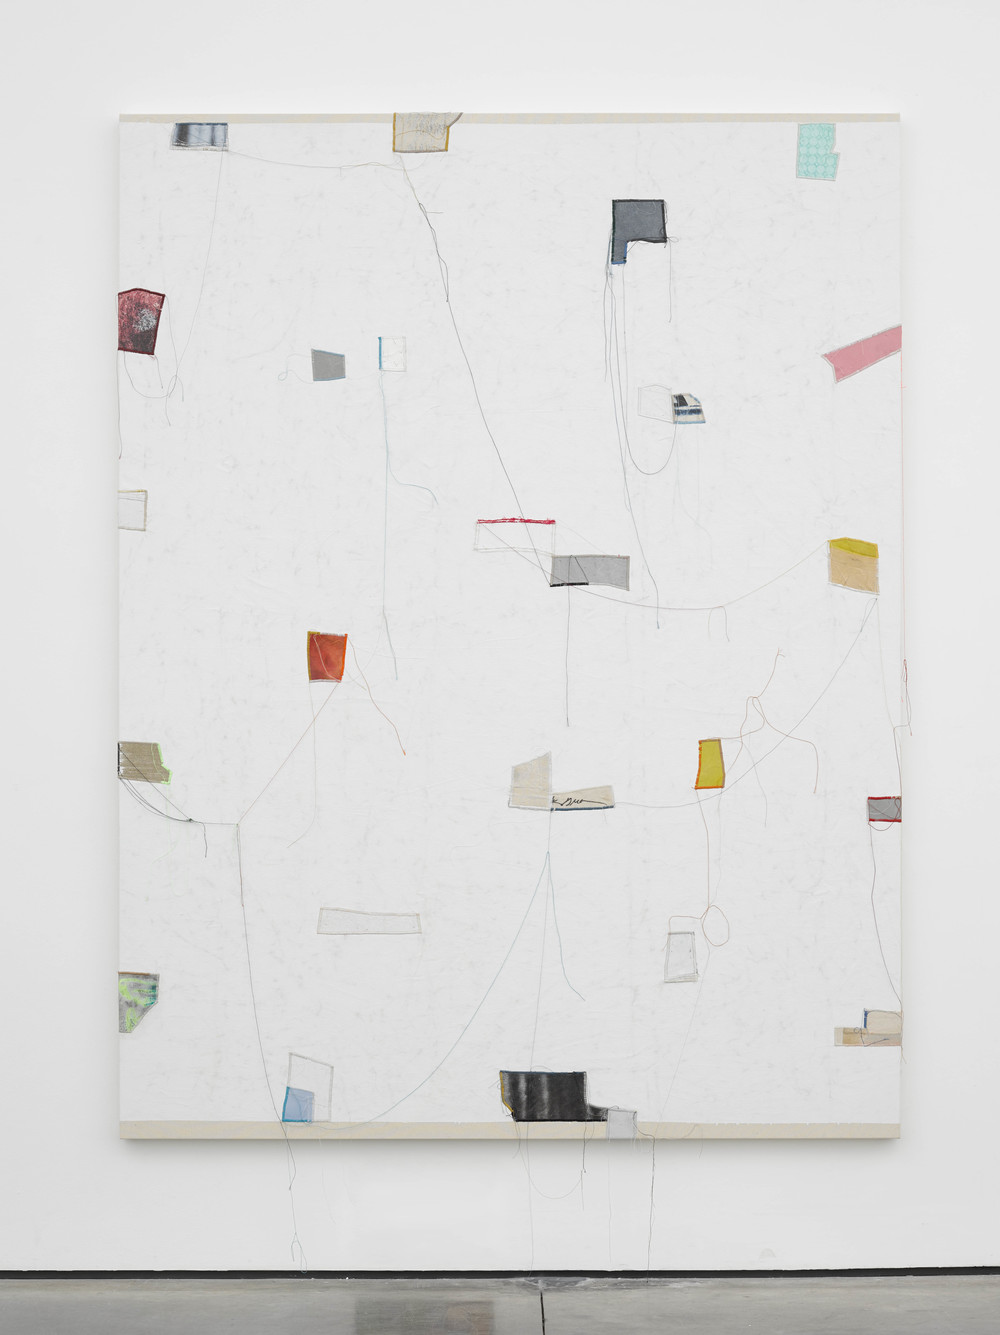 Finding Order: 11 2014 Canvas, thread, enamel and latex 84 x 64 inches